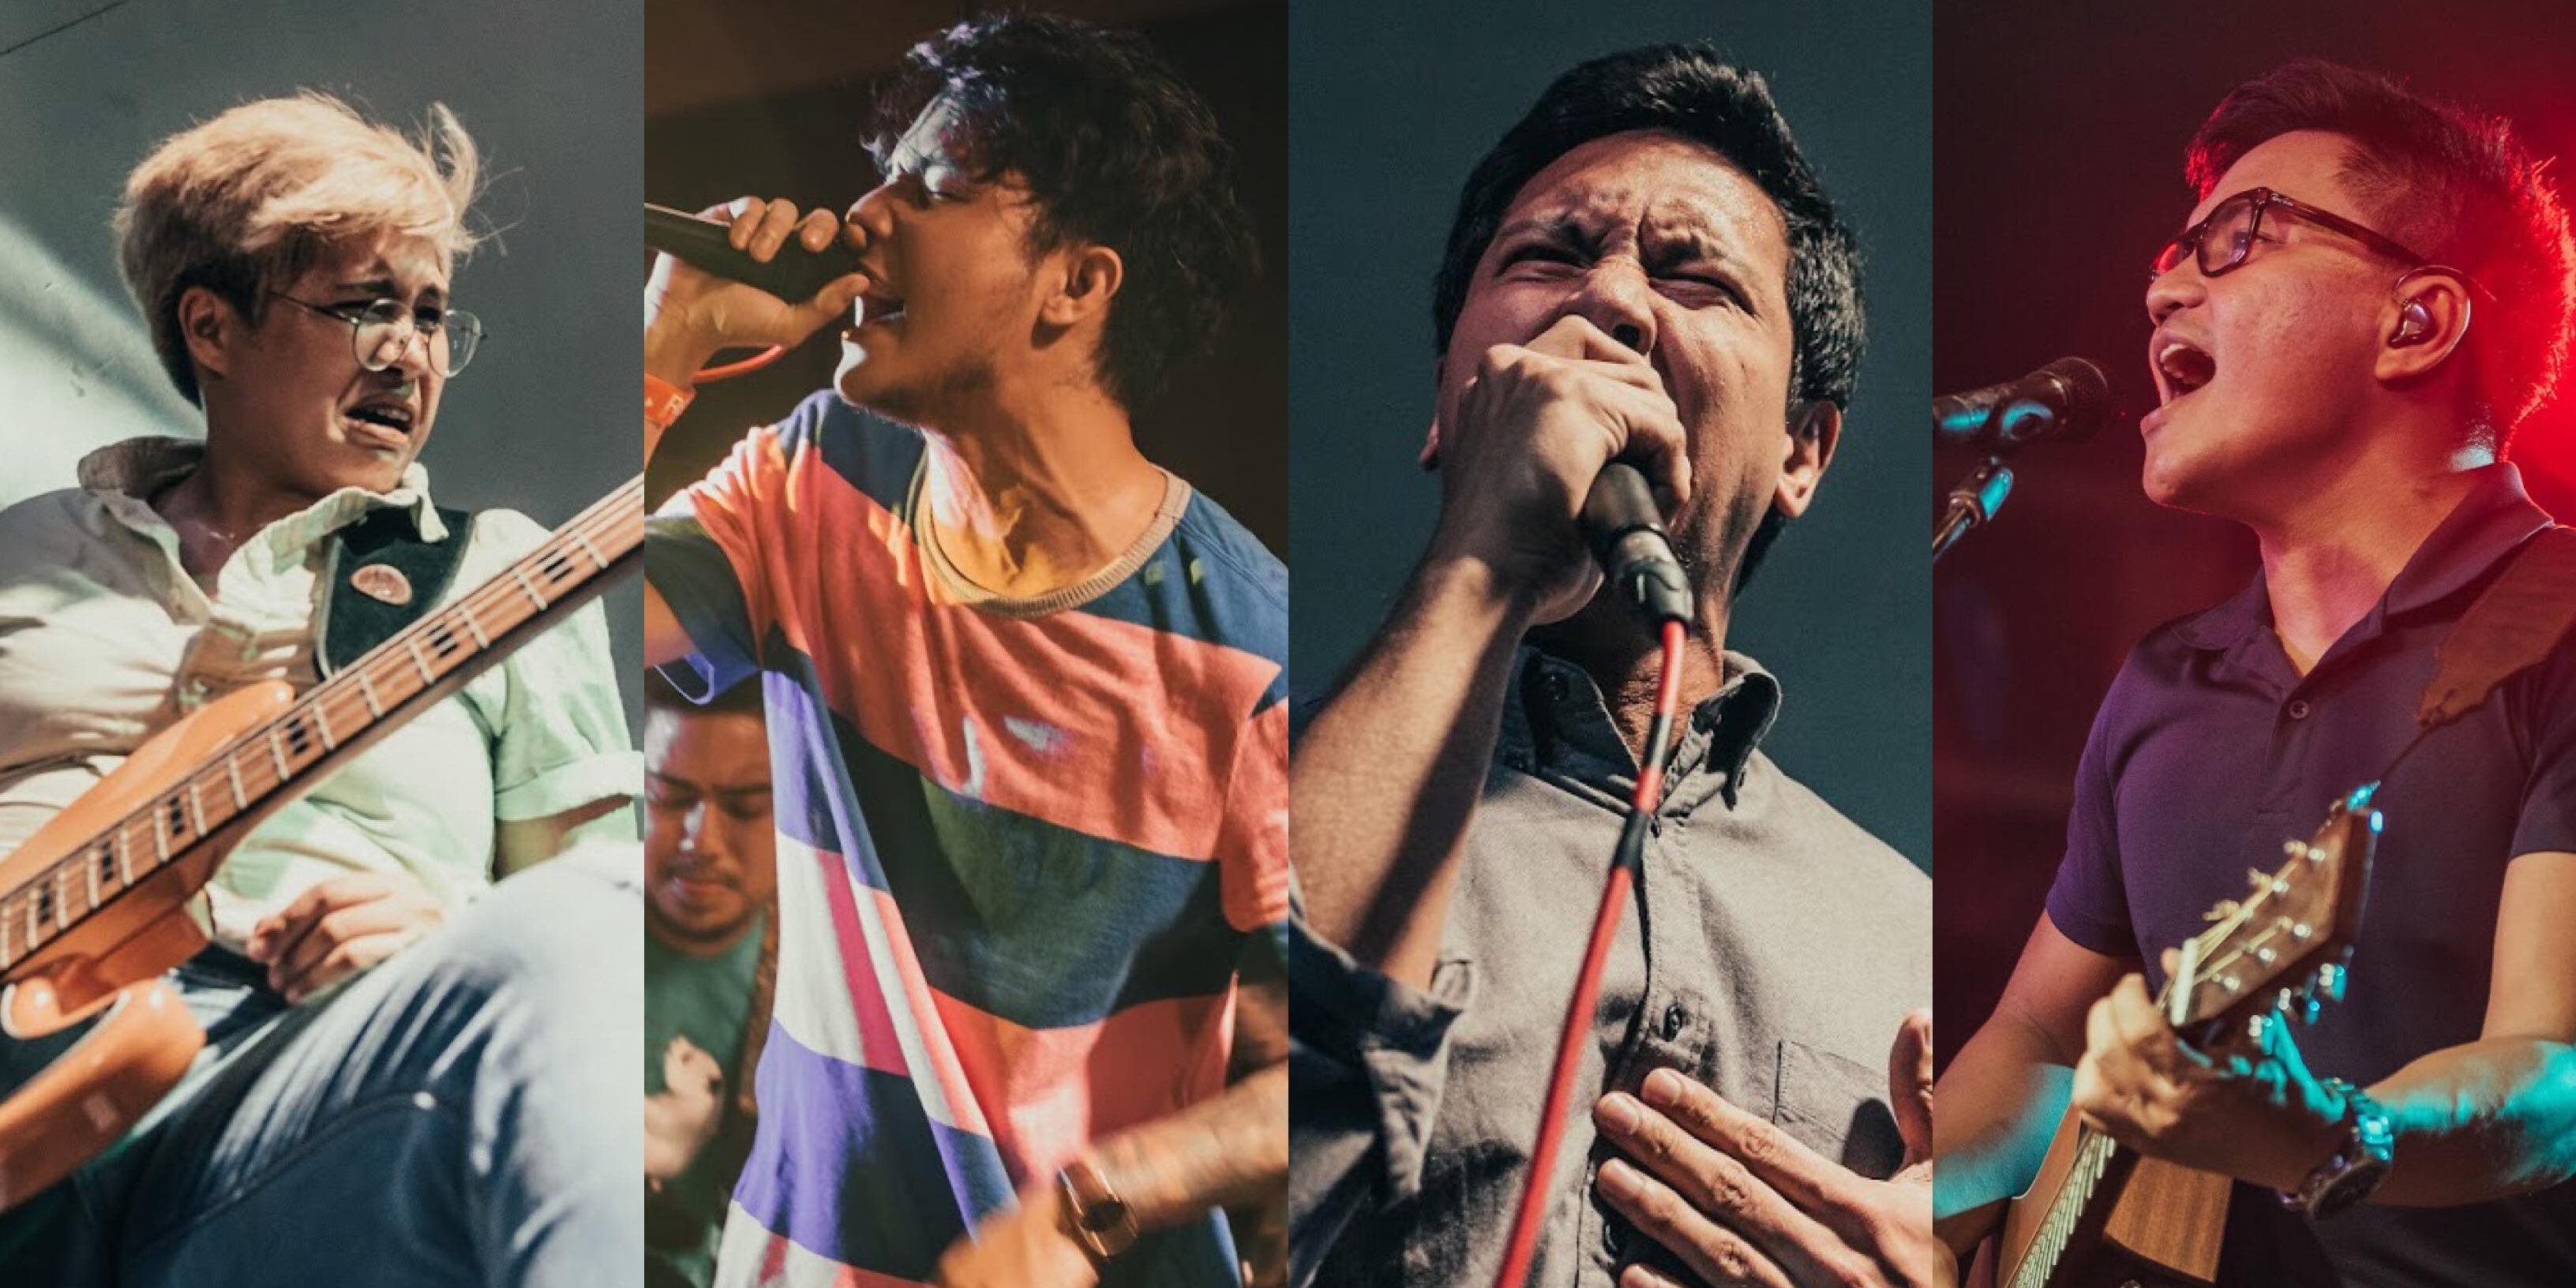 Red Ninja celebrates 9th birthday with Dicta License, Ebe Dancel, and more – photo gallery